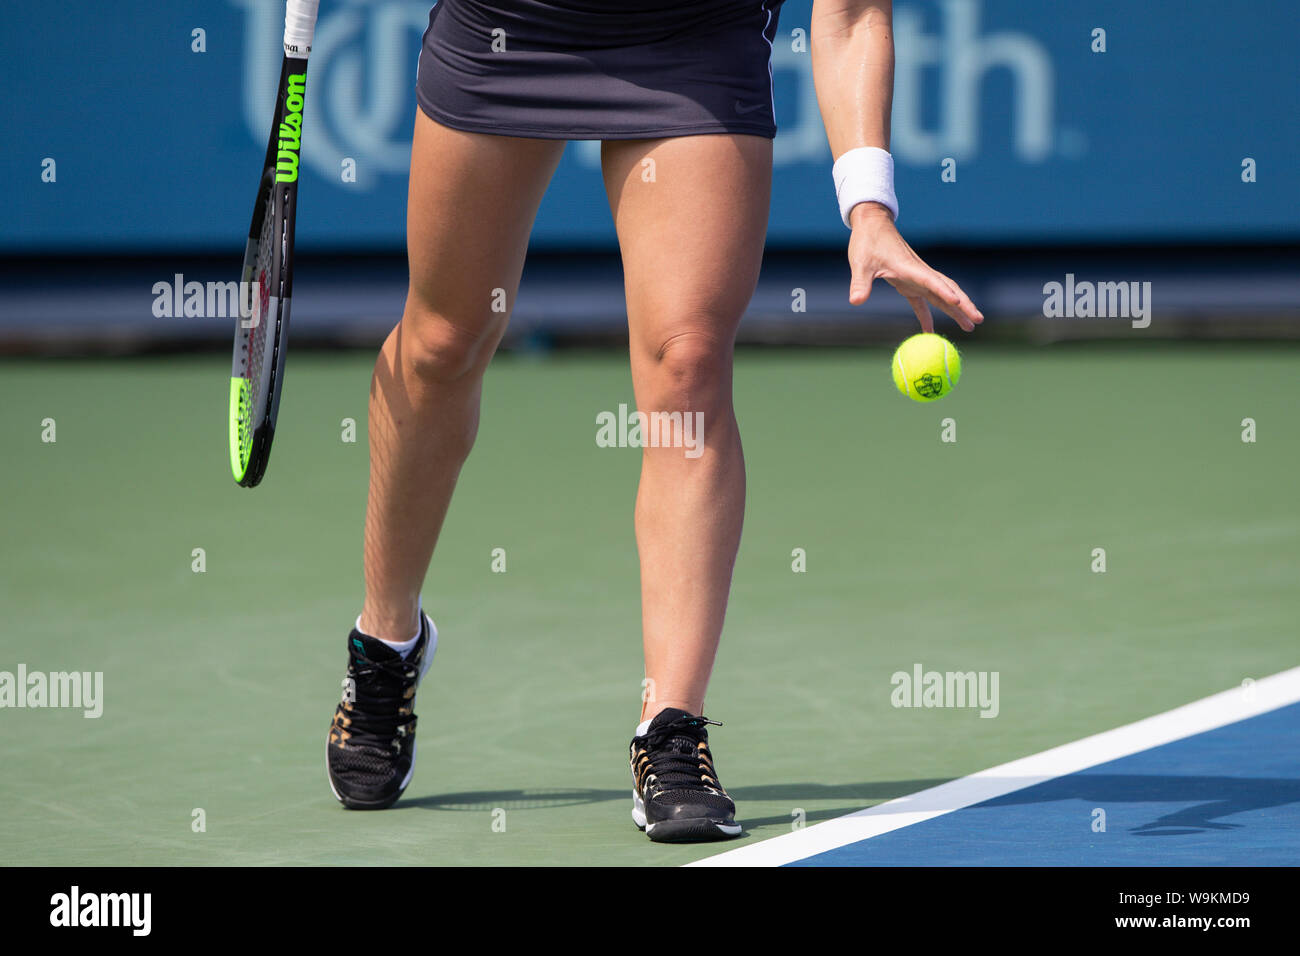 Mason, Ohio, USA. 14th Aug, 2019. Simona Halep (ROU) prepares to serve during Wednesday's round of the Western and Southern Open at the Lindner Family Tennis Center, Mason, Oh. Credit: Scott Stuart/ZUMA Wire/Alamy Live News Stock Photo